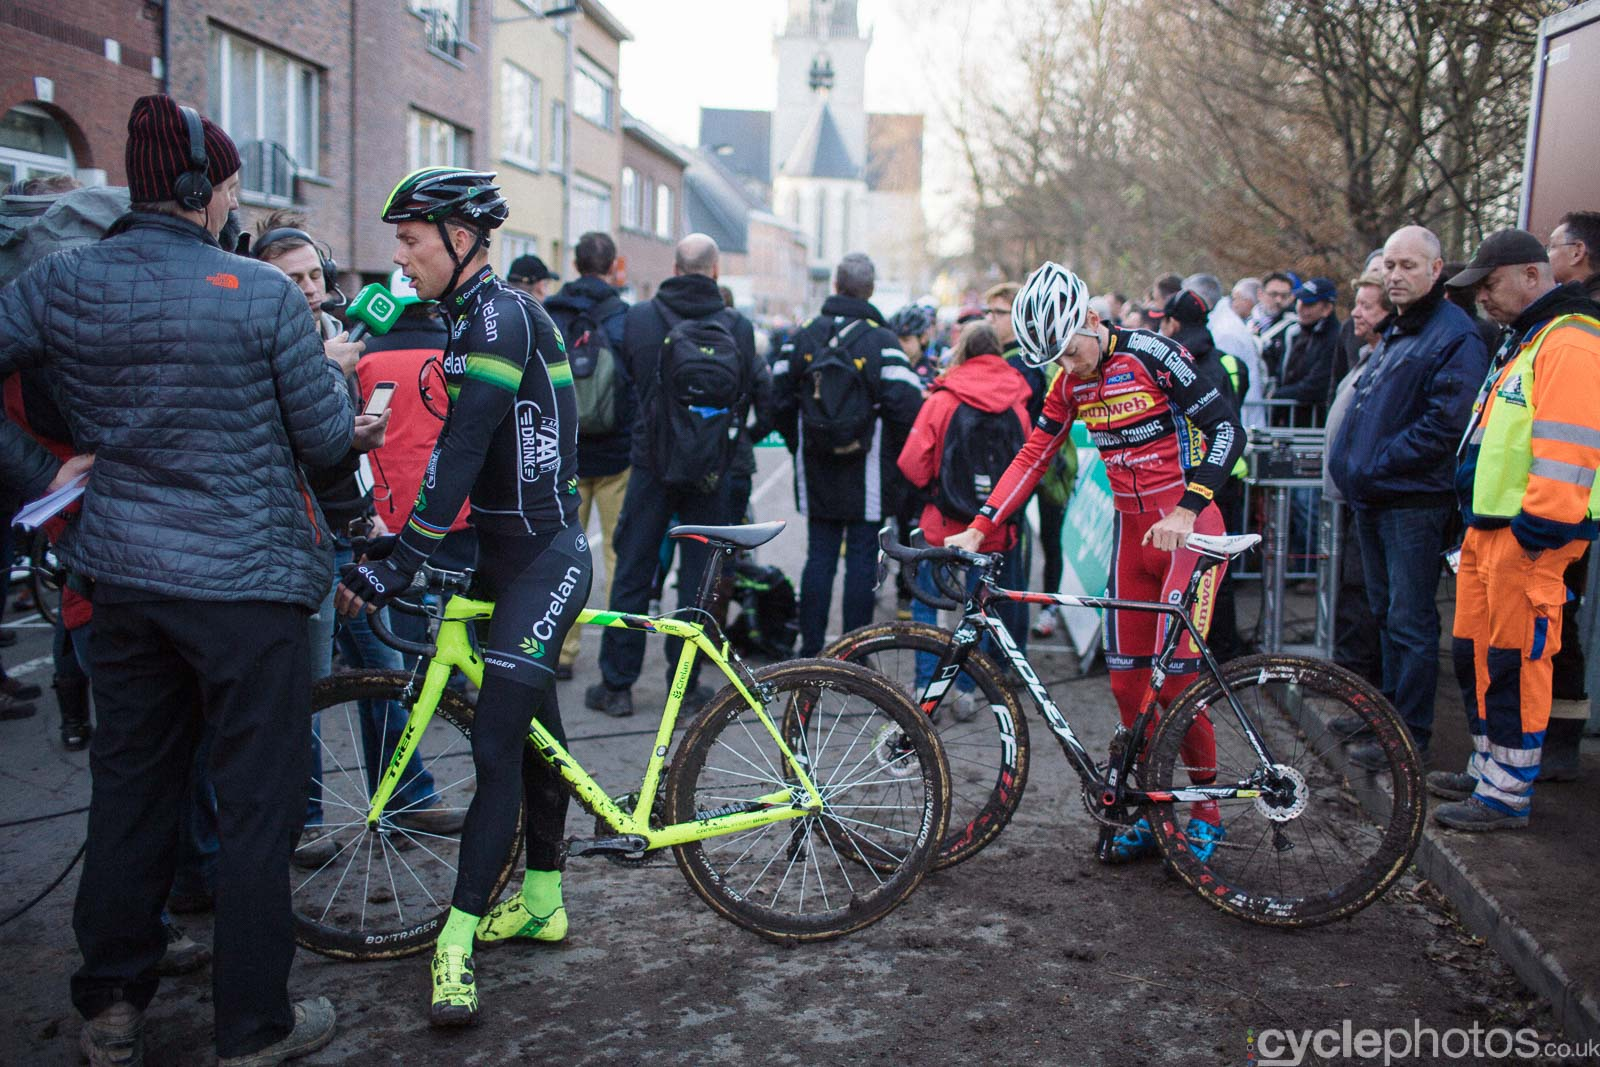 2015-cyclephotos-cyclocross-diegem-152205-interview-queue